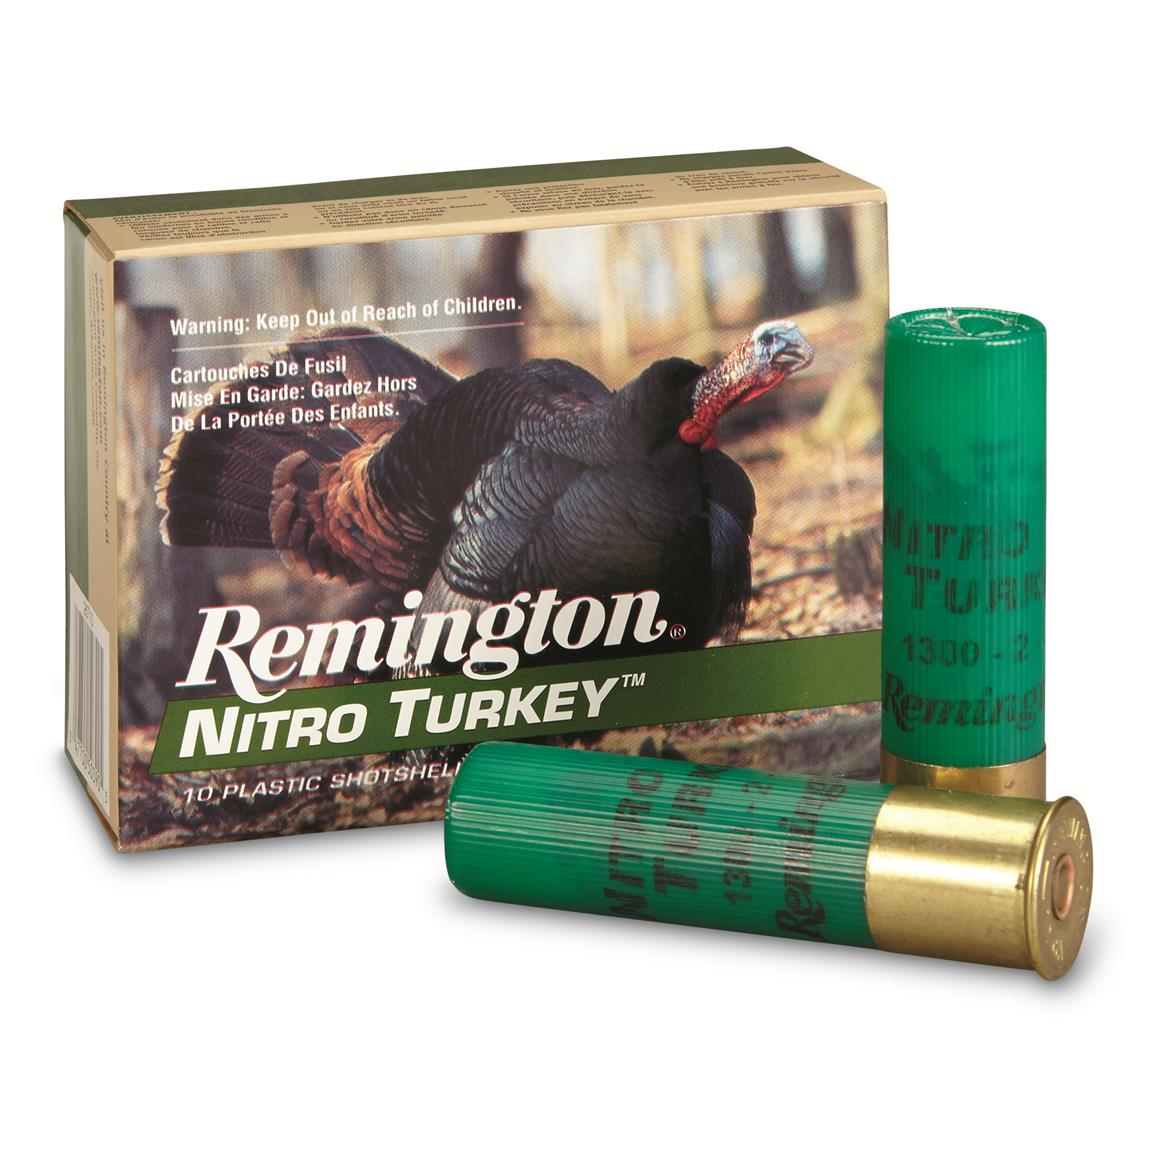 "Remington, Nitro Turkey, 12 Gauge, Magnum Copper-plated Buffered Turkey Load, 3 1/2"", 10 Rounds"